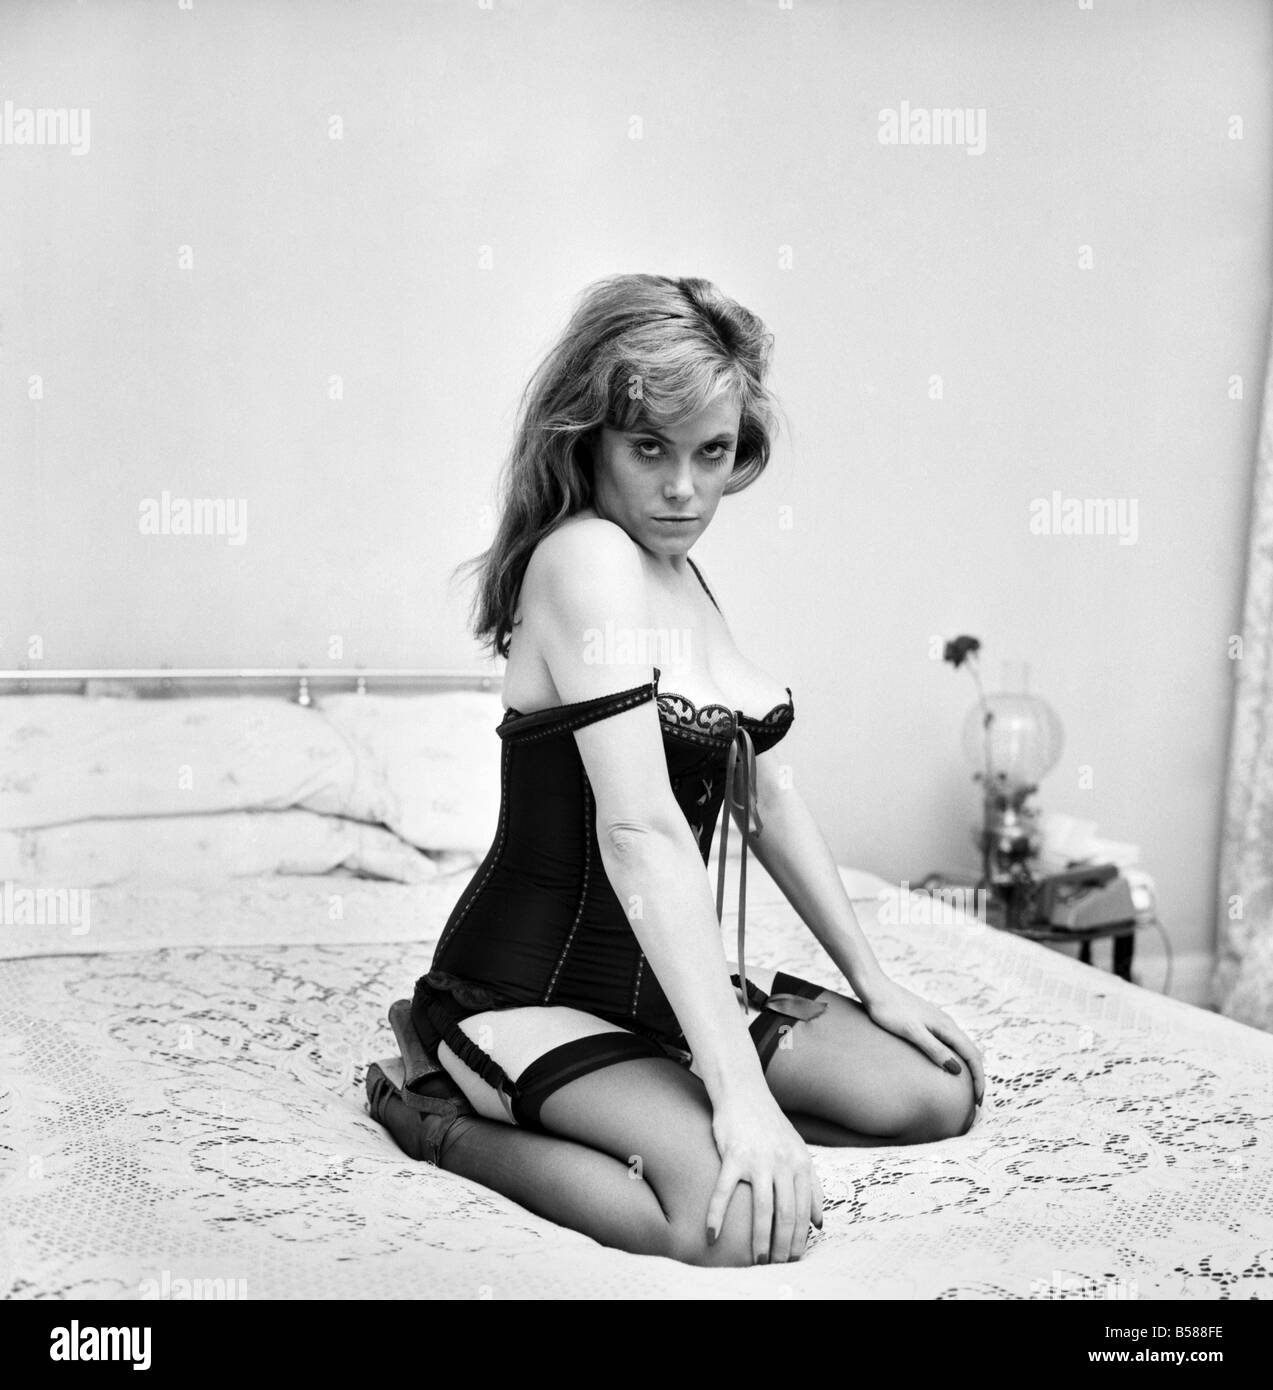 Wendy Richard nude (82 photos), Topless, Leaked, Instagram, swimsuit 2006